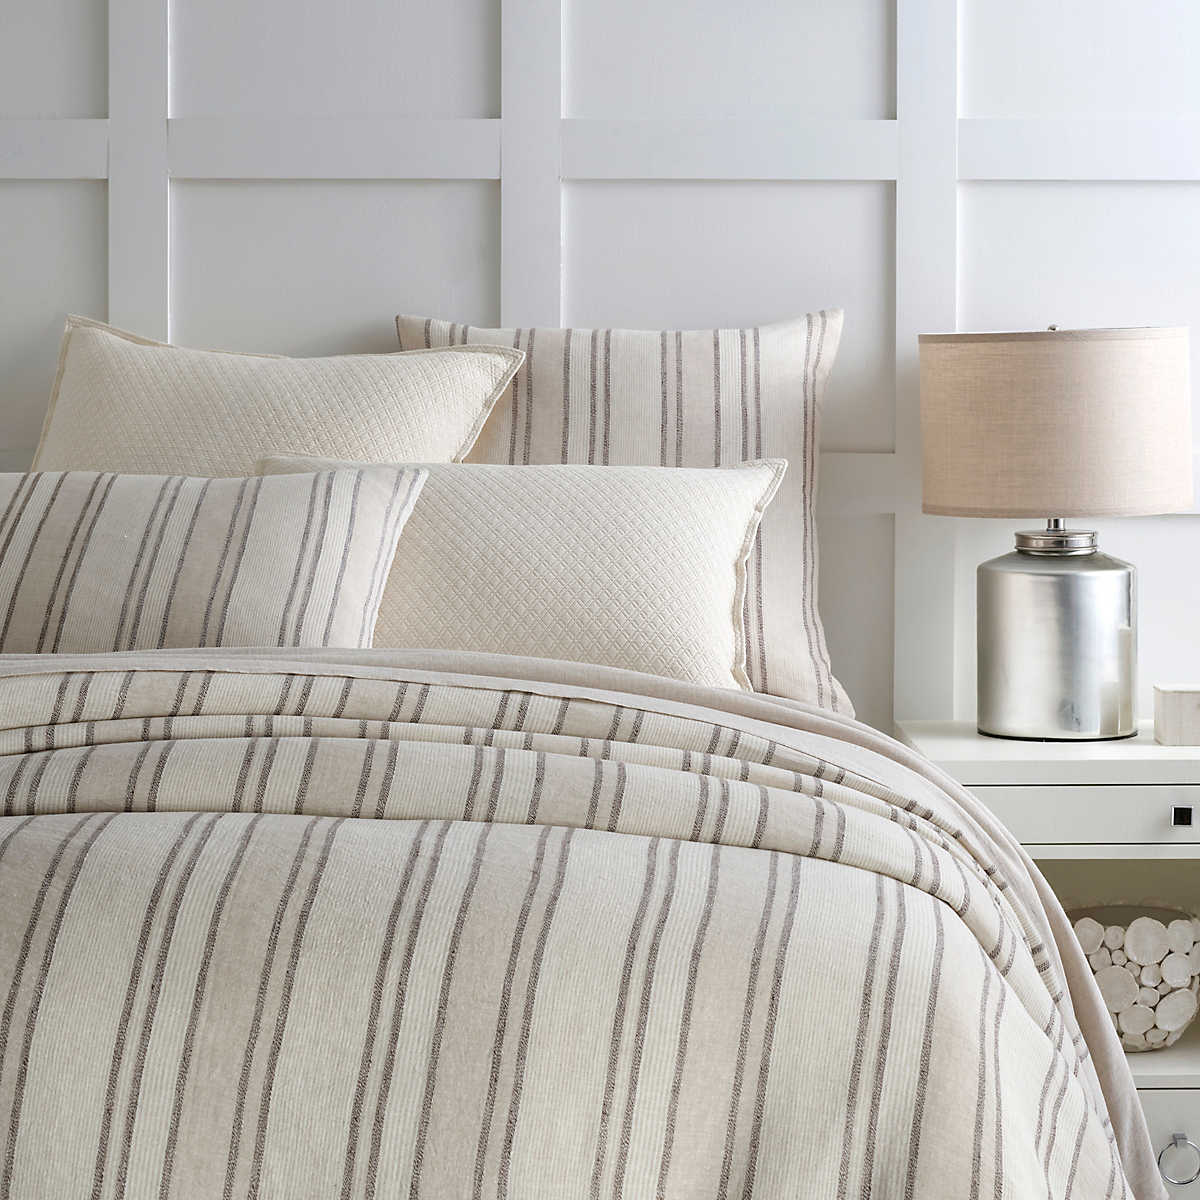 Hampton Ticking Linen Natural Duvet Cover Pine Cone Hill